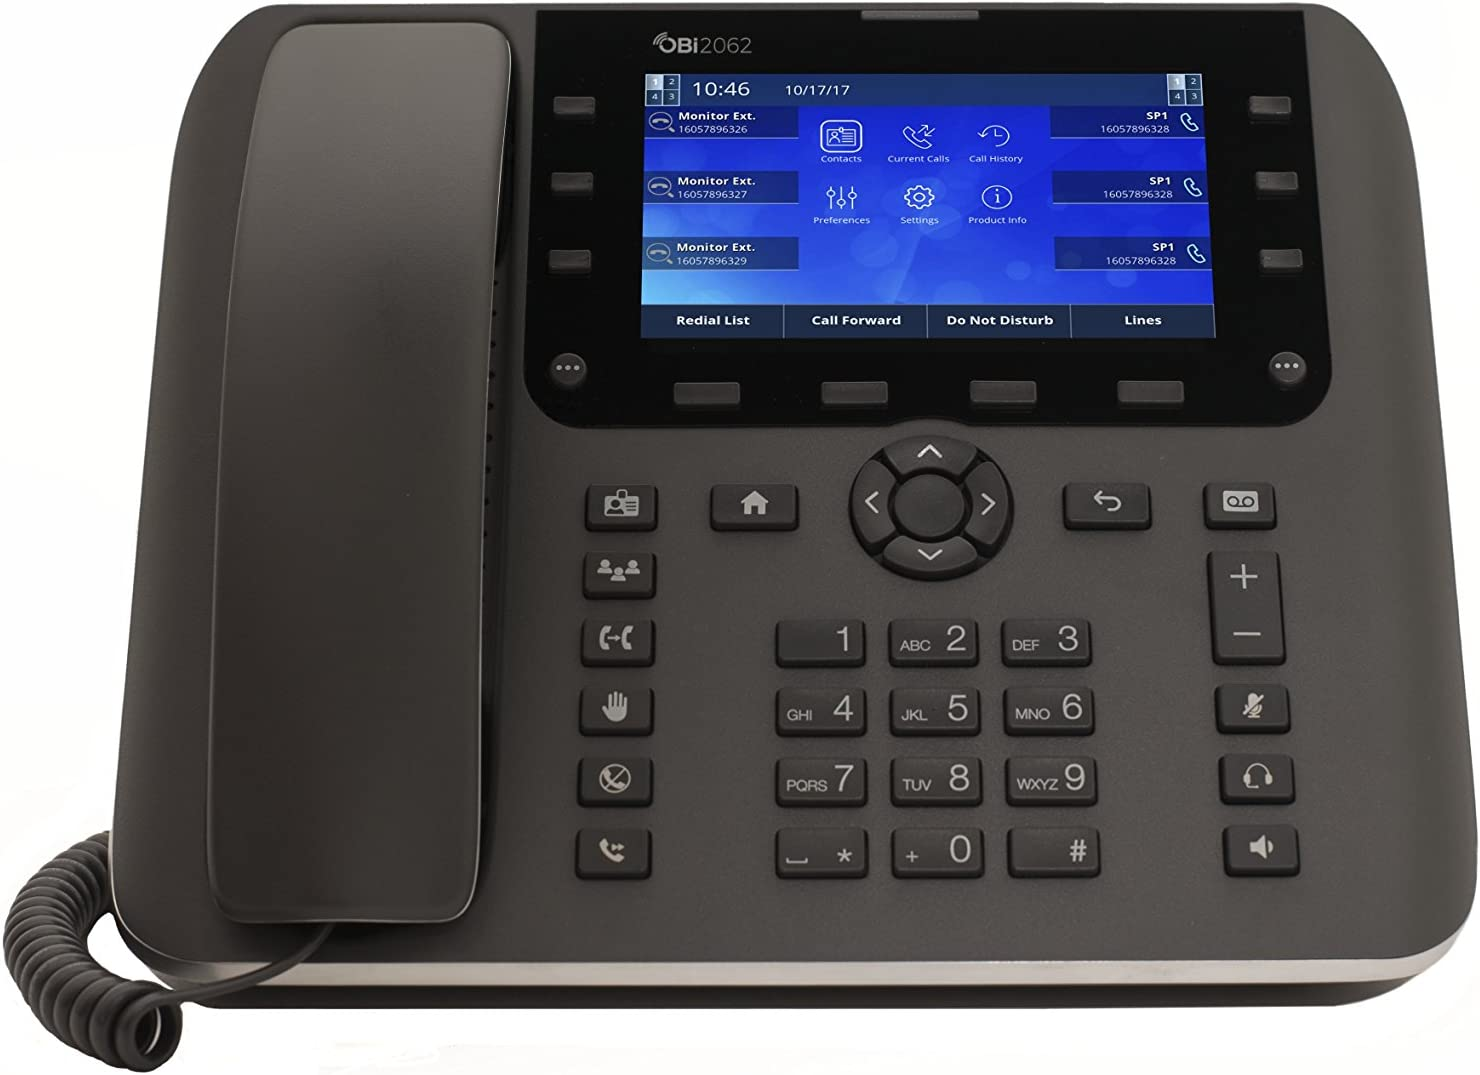 Obihai OBi2000 Series Gigabit IP Phones (OBi2062)